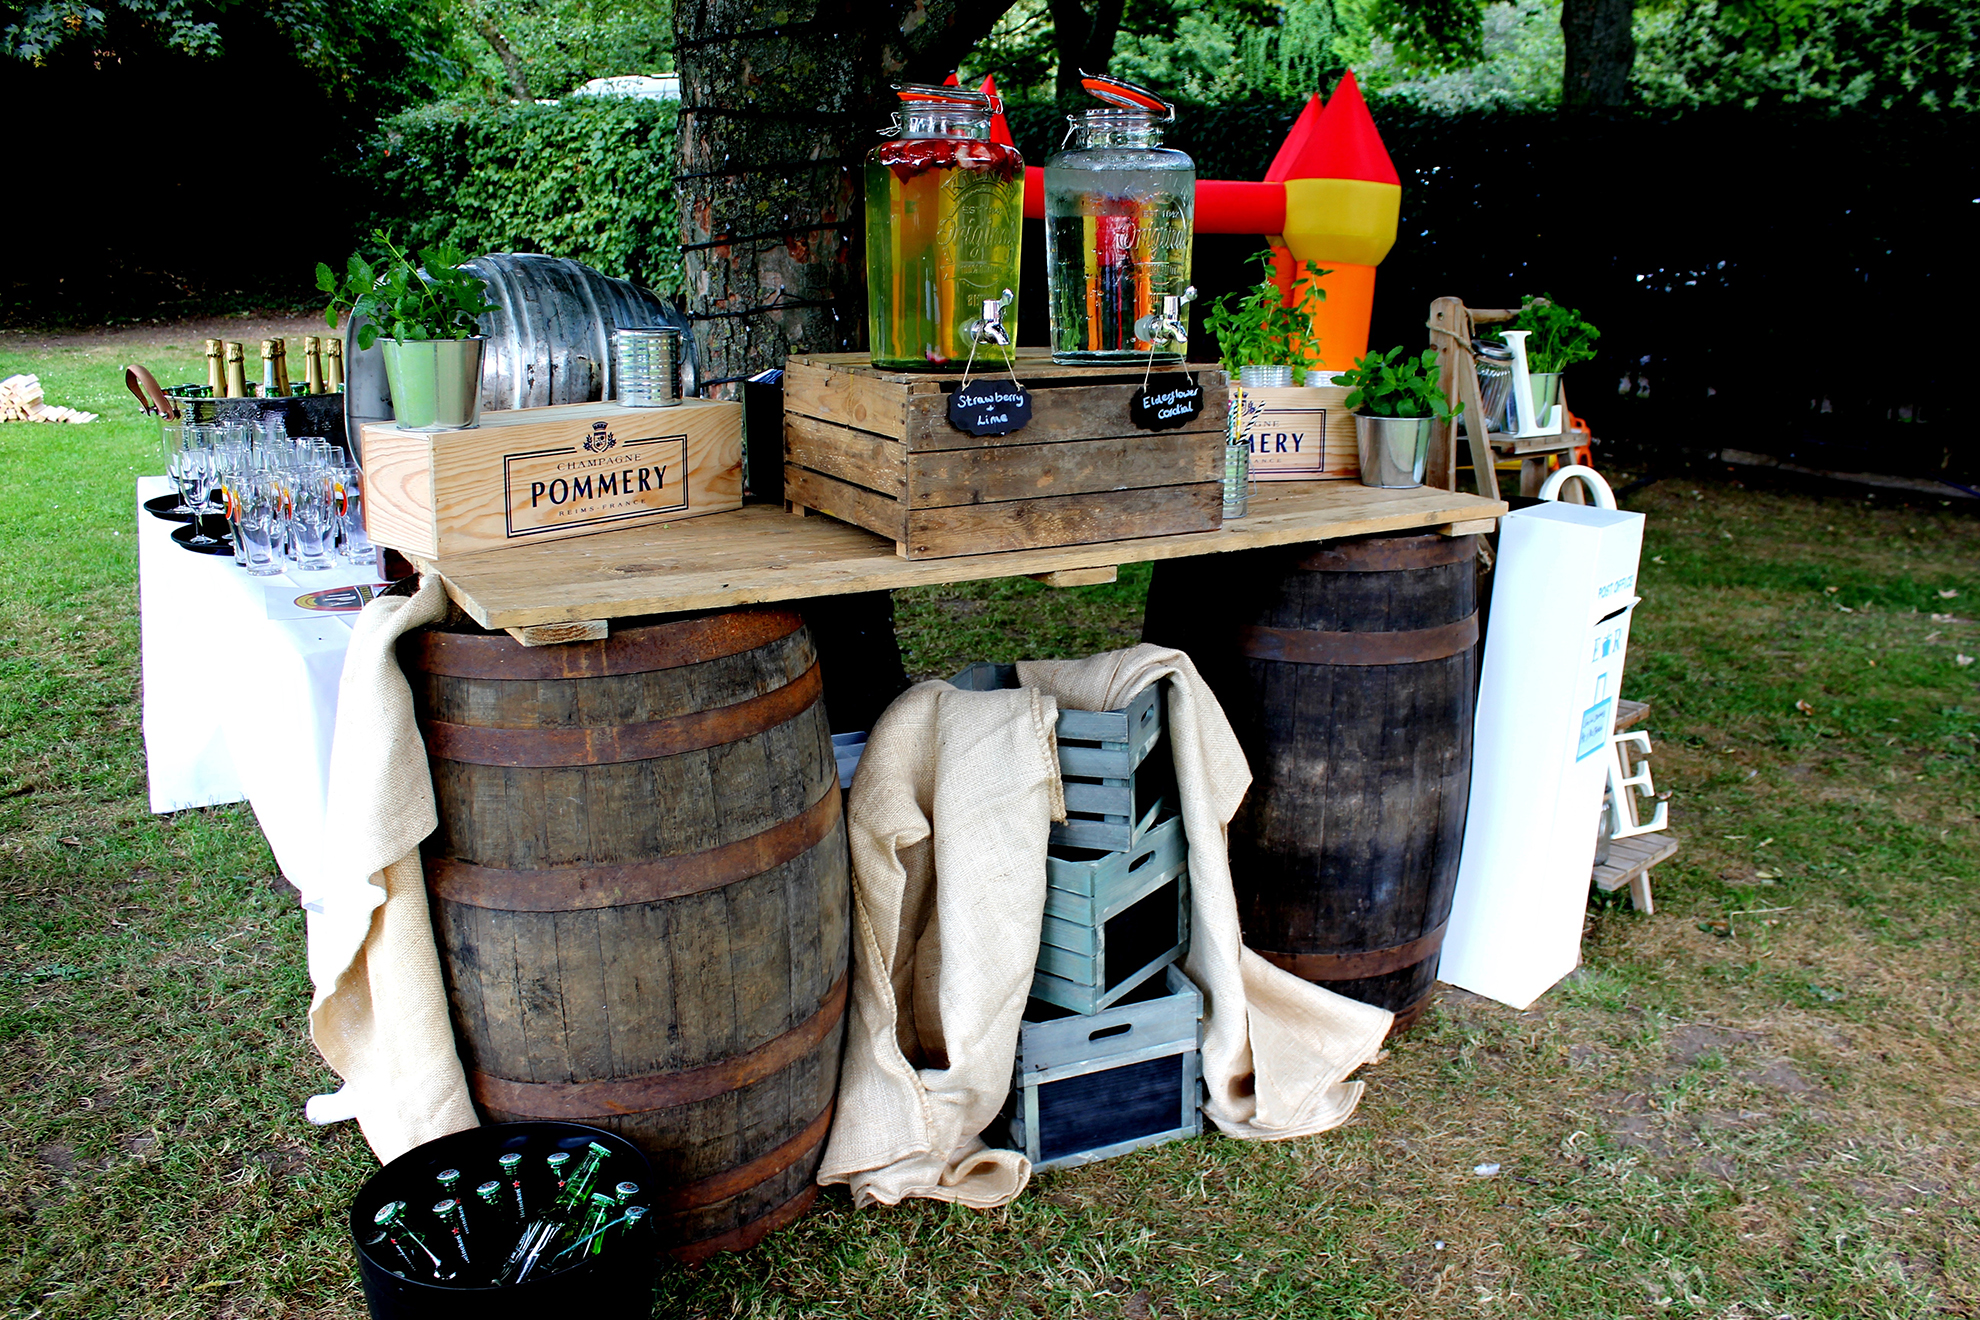 A diy bar set up made out of two barrels with a door as the bar top. Ontop of the bar there are various boxes with two kilner jars containing elderflower cordial and strawberry & lime cordial. there are champagne flutes and champagne and a red & yellow bouncy castle.